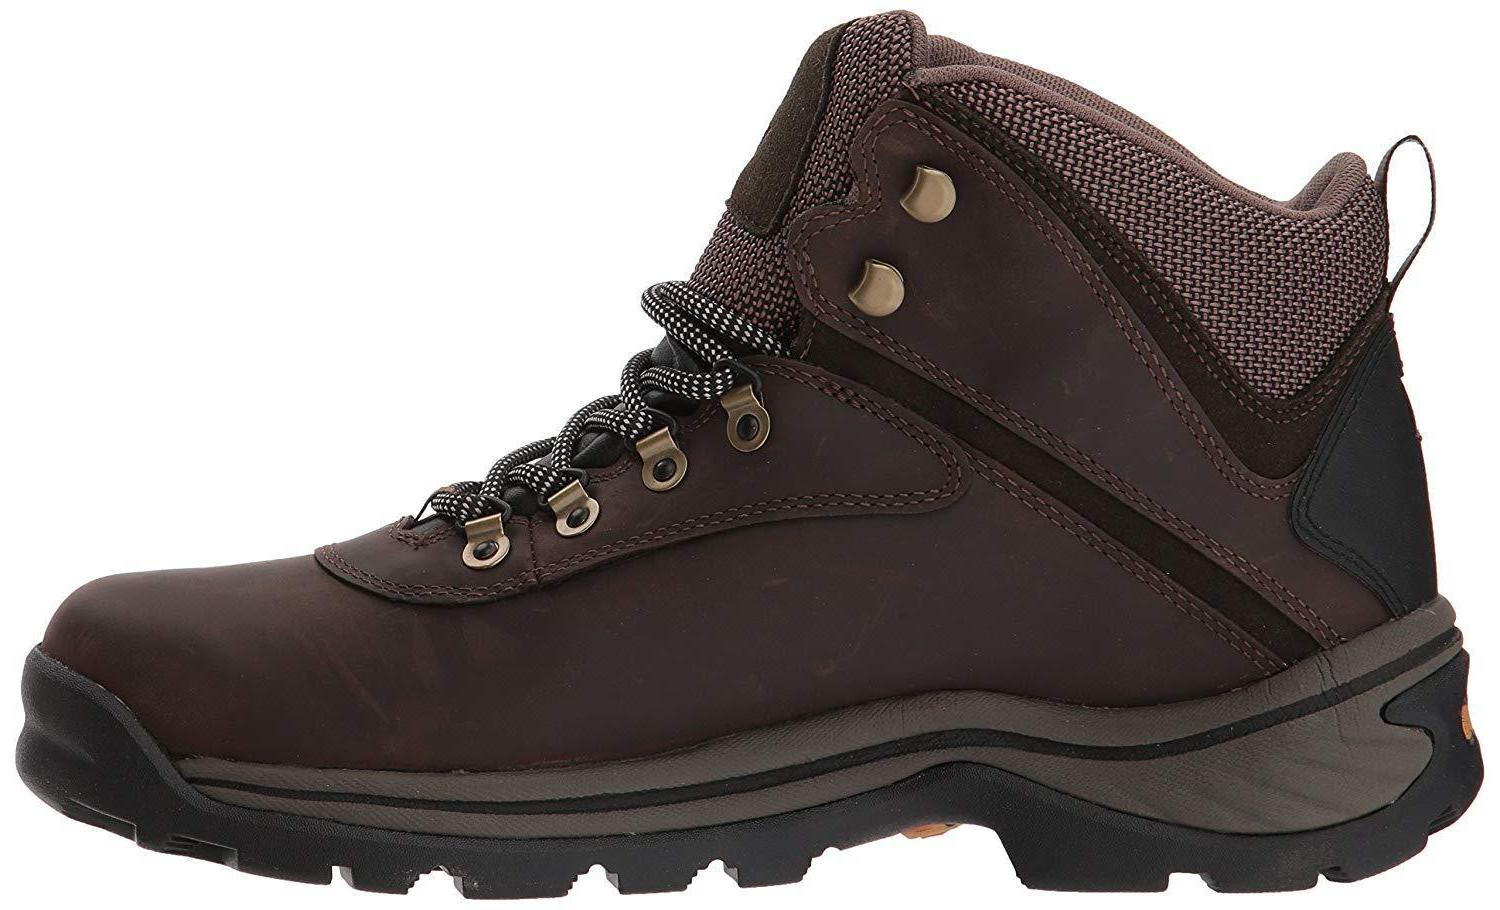 Timberland Men's Ledge Mid Waterproof